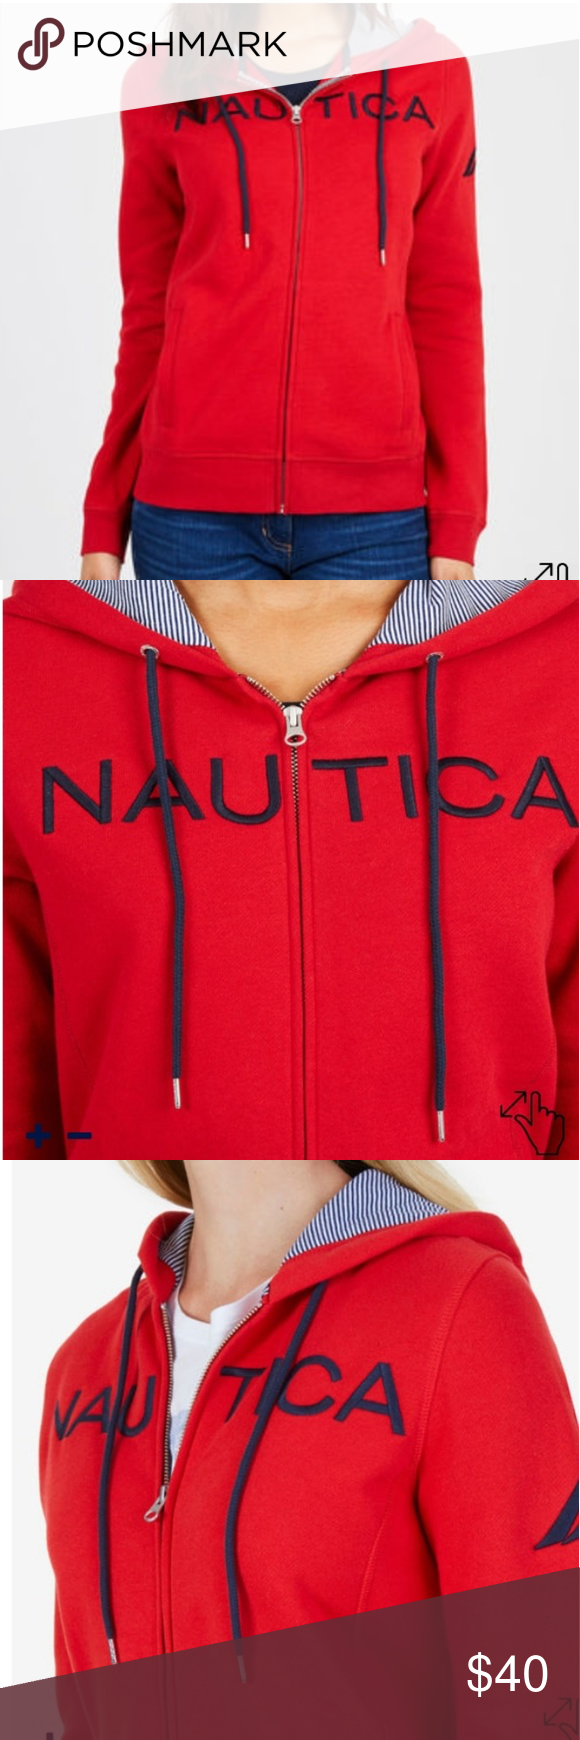 cb5db9d93 New with tags Nautica Women's Hoodie Nautica Women's Signature Full-Zip  Logo Hoodies*80%Cotton, 20%Polyester *Rubbed Cuff &Hem,Welt Packets*Brand  New with ...